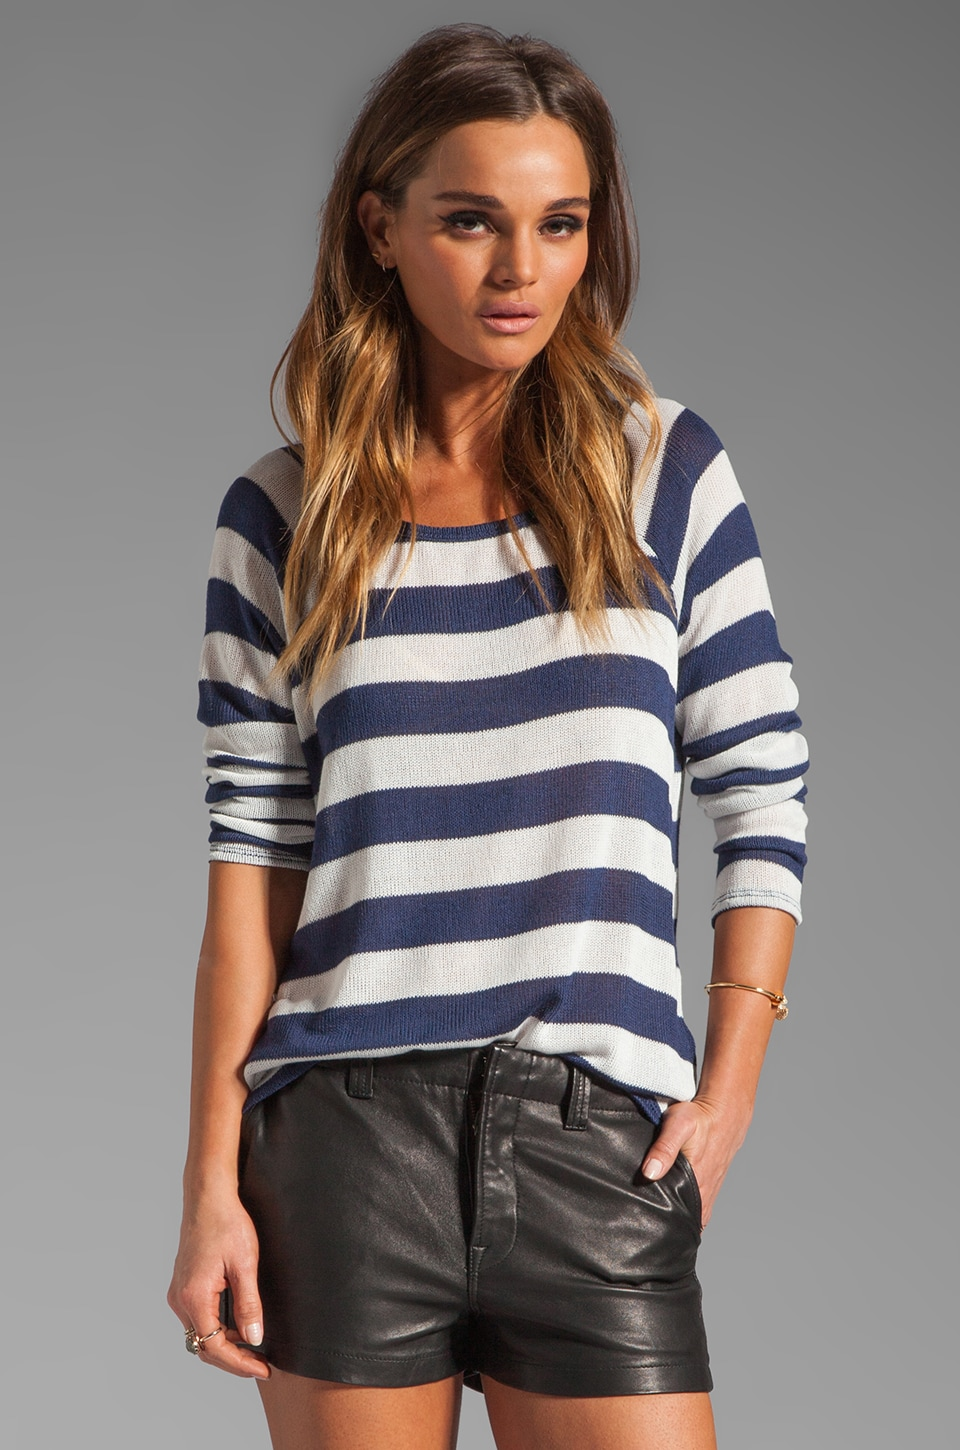 Soft Joie Dalya Stripe Sweater in Peacoat